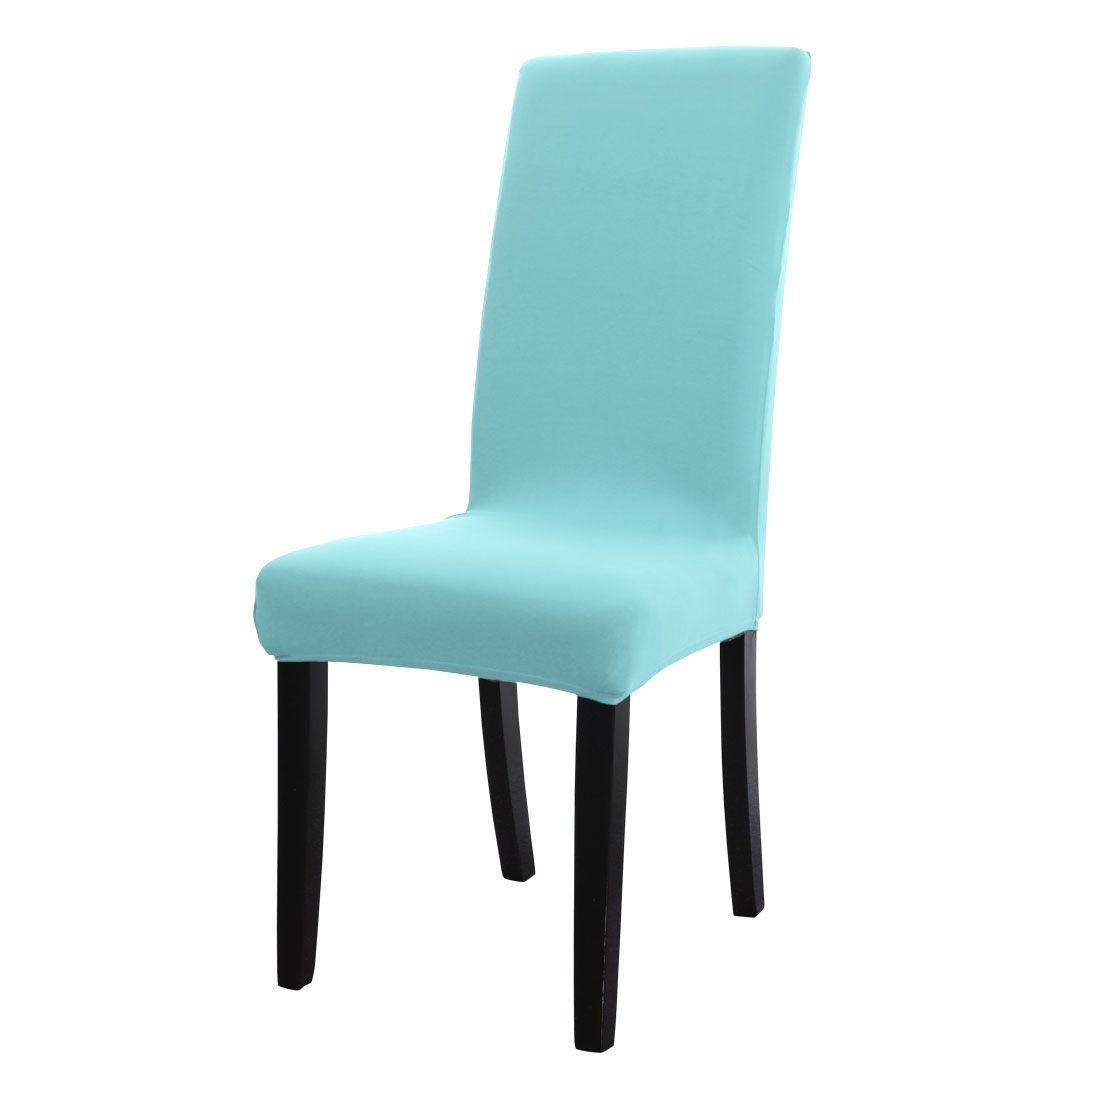 aqua dining room chair covers living diy spandex washable stool cover protector slipcover sky blue walmart com